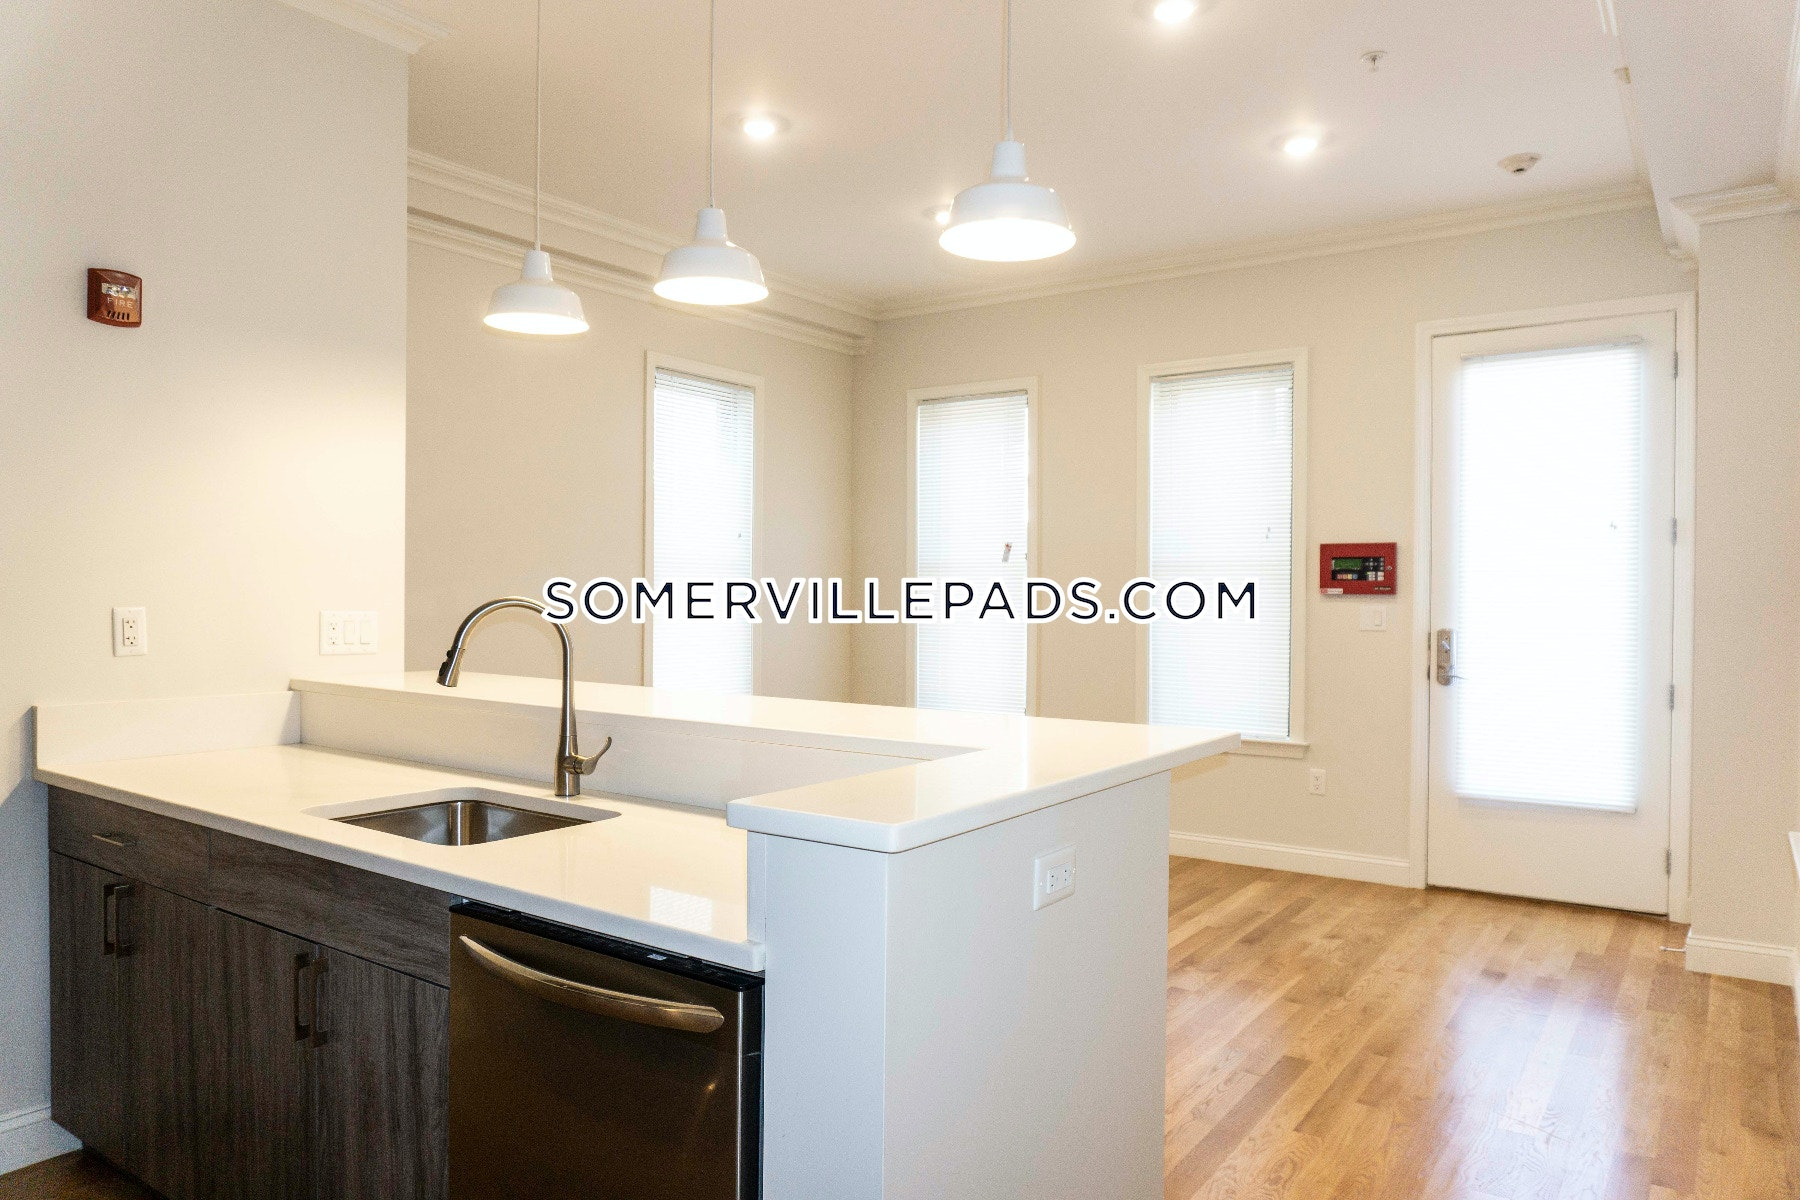 4-beds-2-baths-somerville-east-somerville-4800-453925